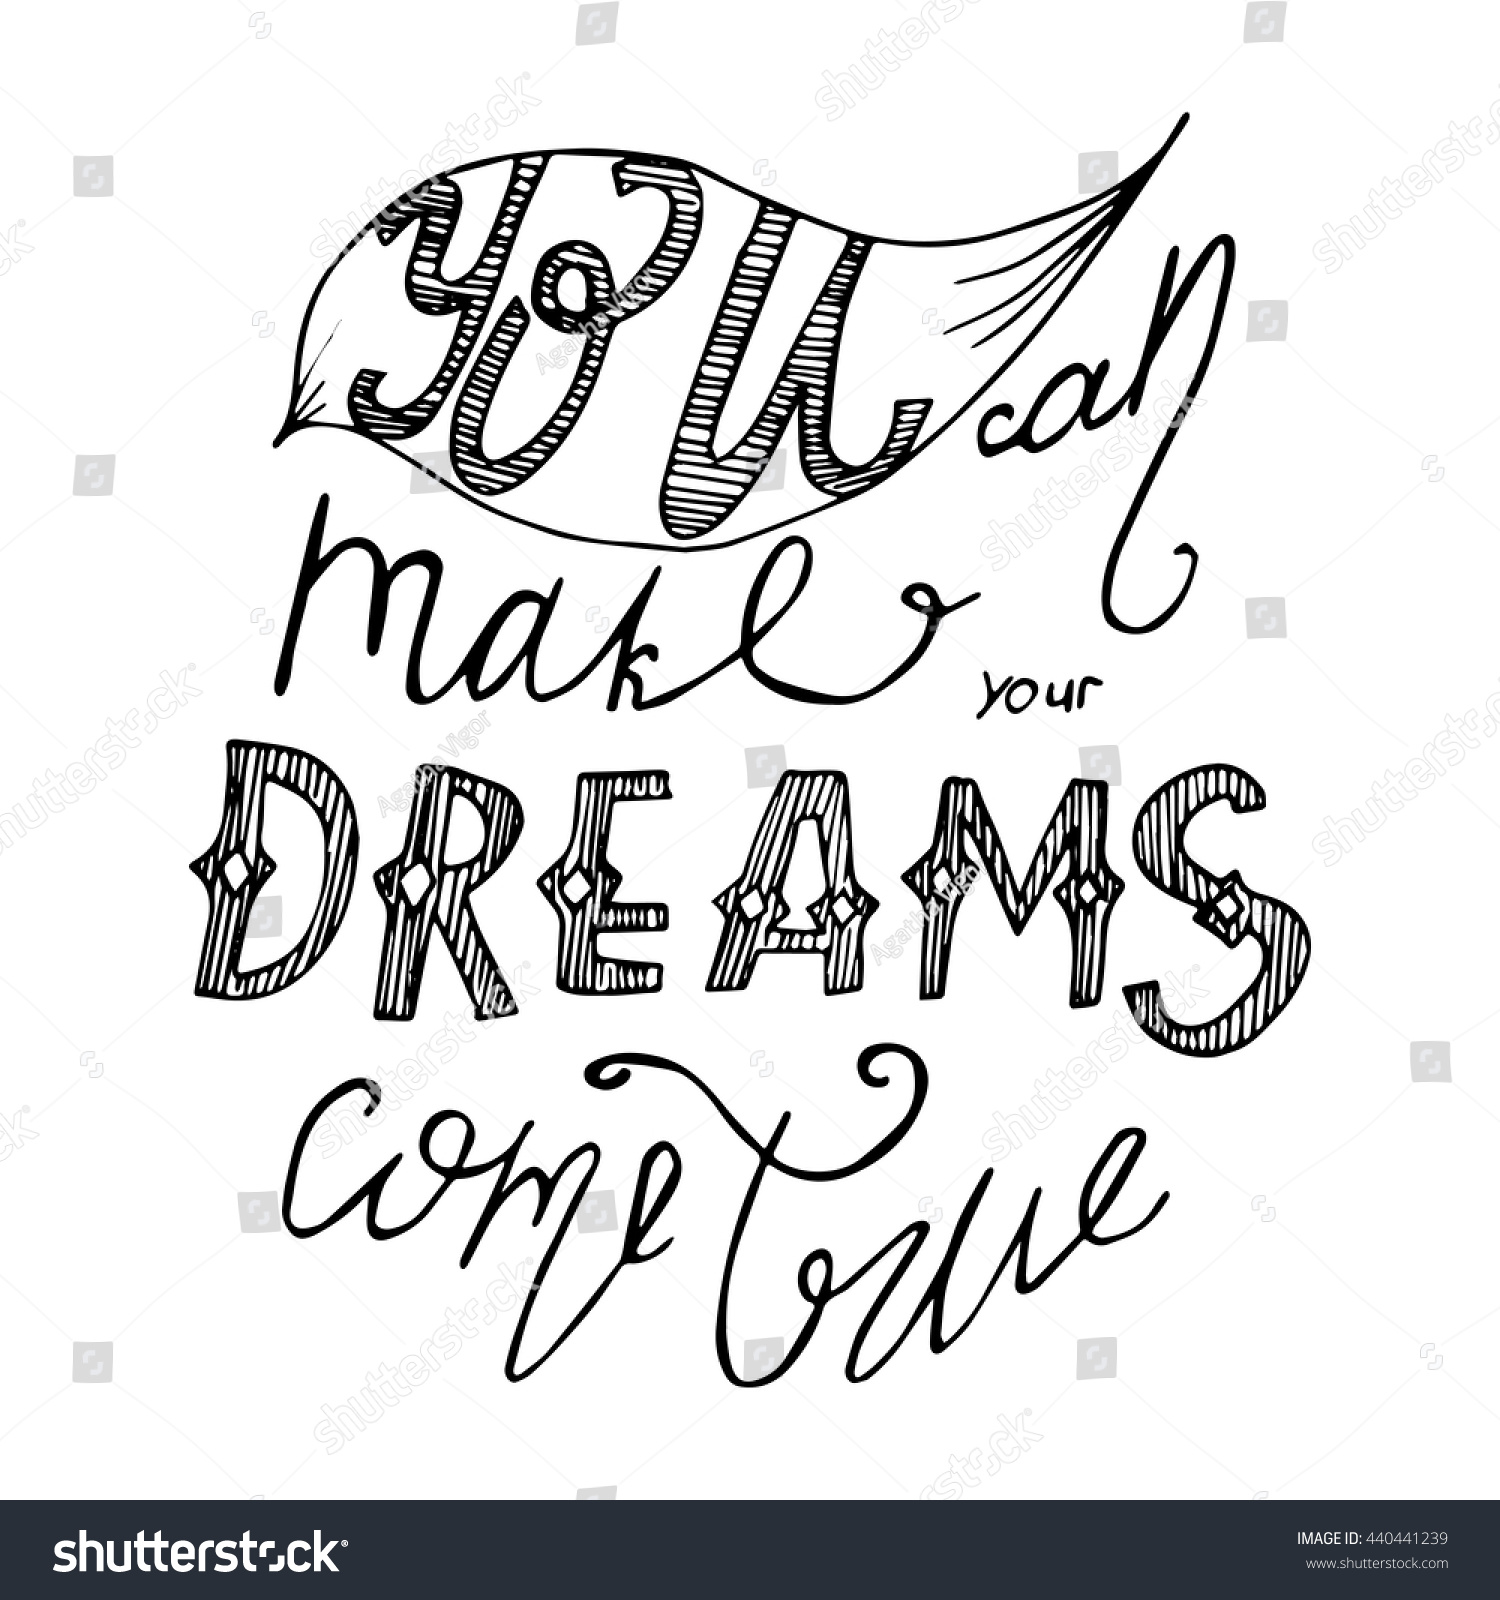 Poster design drawing - Vector Card Or Poster Design With Unique Typography Hand Lettering Phrase You Can Make